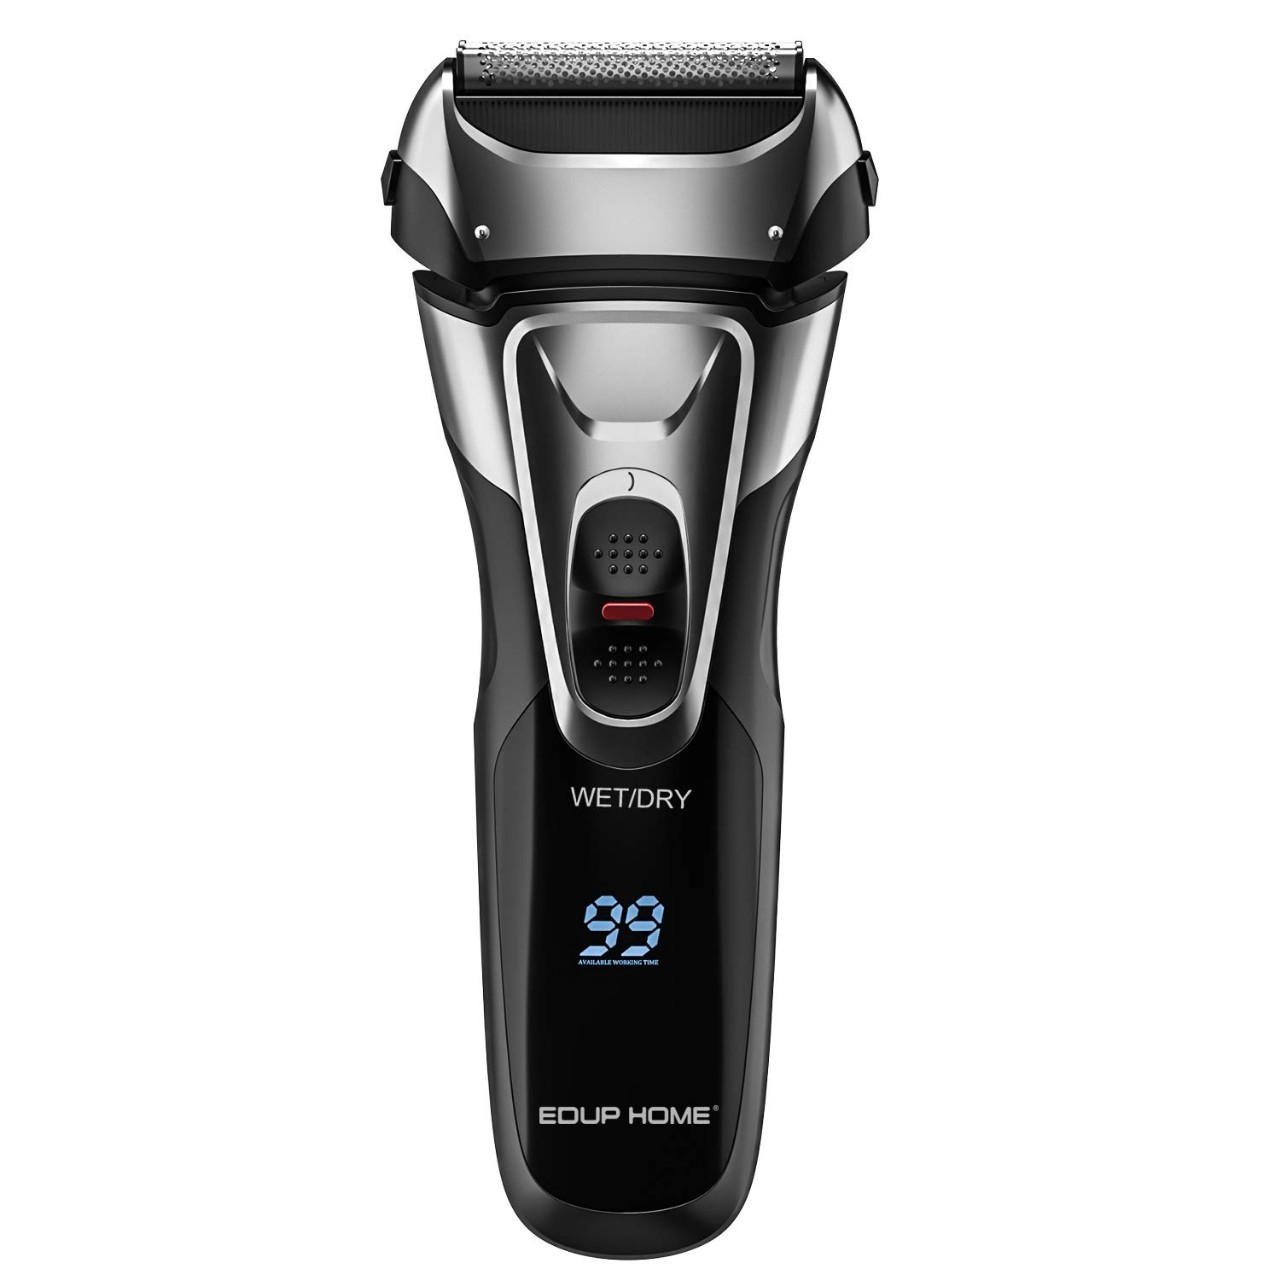 Electric Shaver with Pop-up Trimmer for Men, Men's Electric Razor Cordless Foil Shaver, IPX7 Water